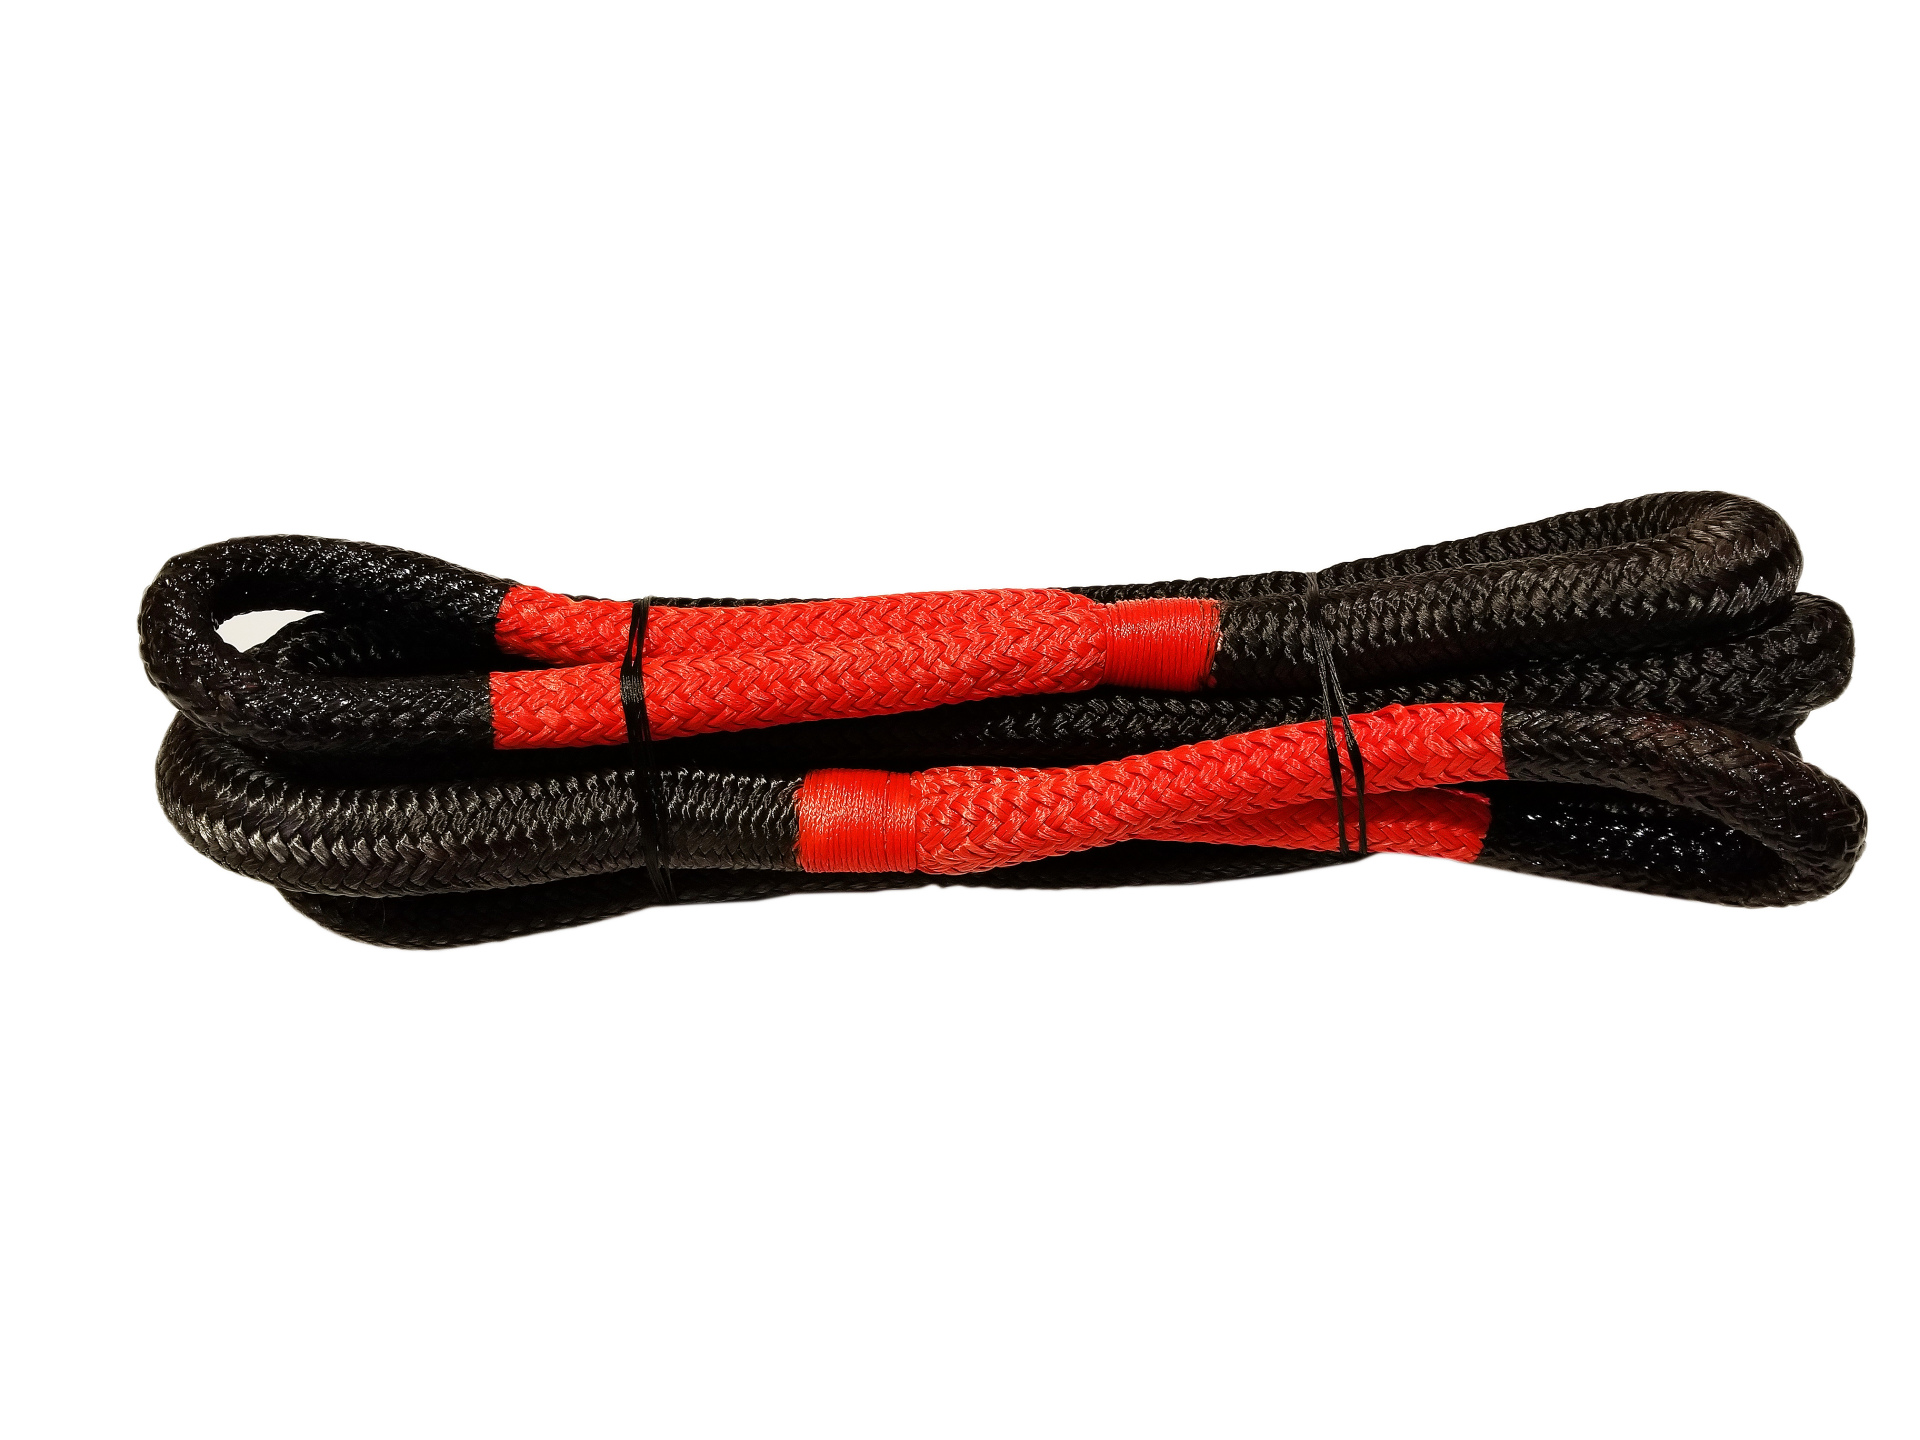 3/4 X 20 Kinetic Rope Black with Red